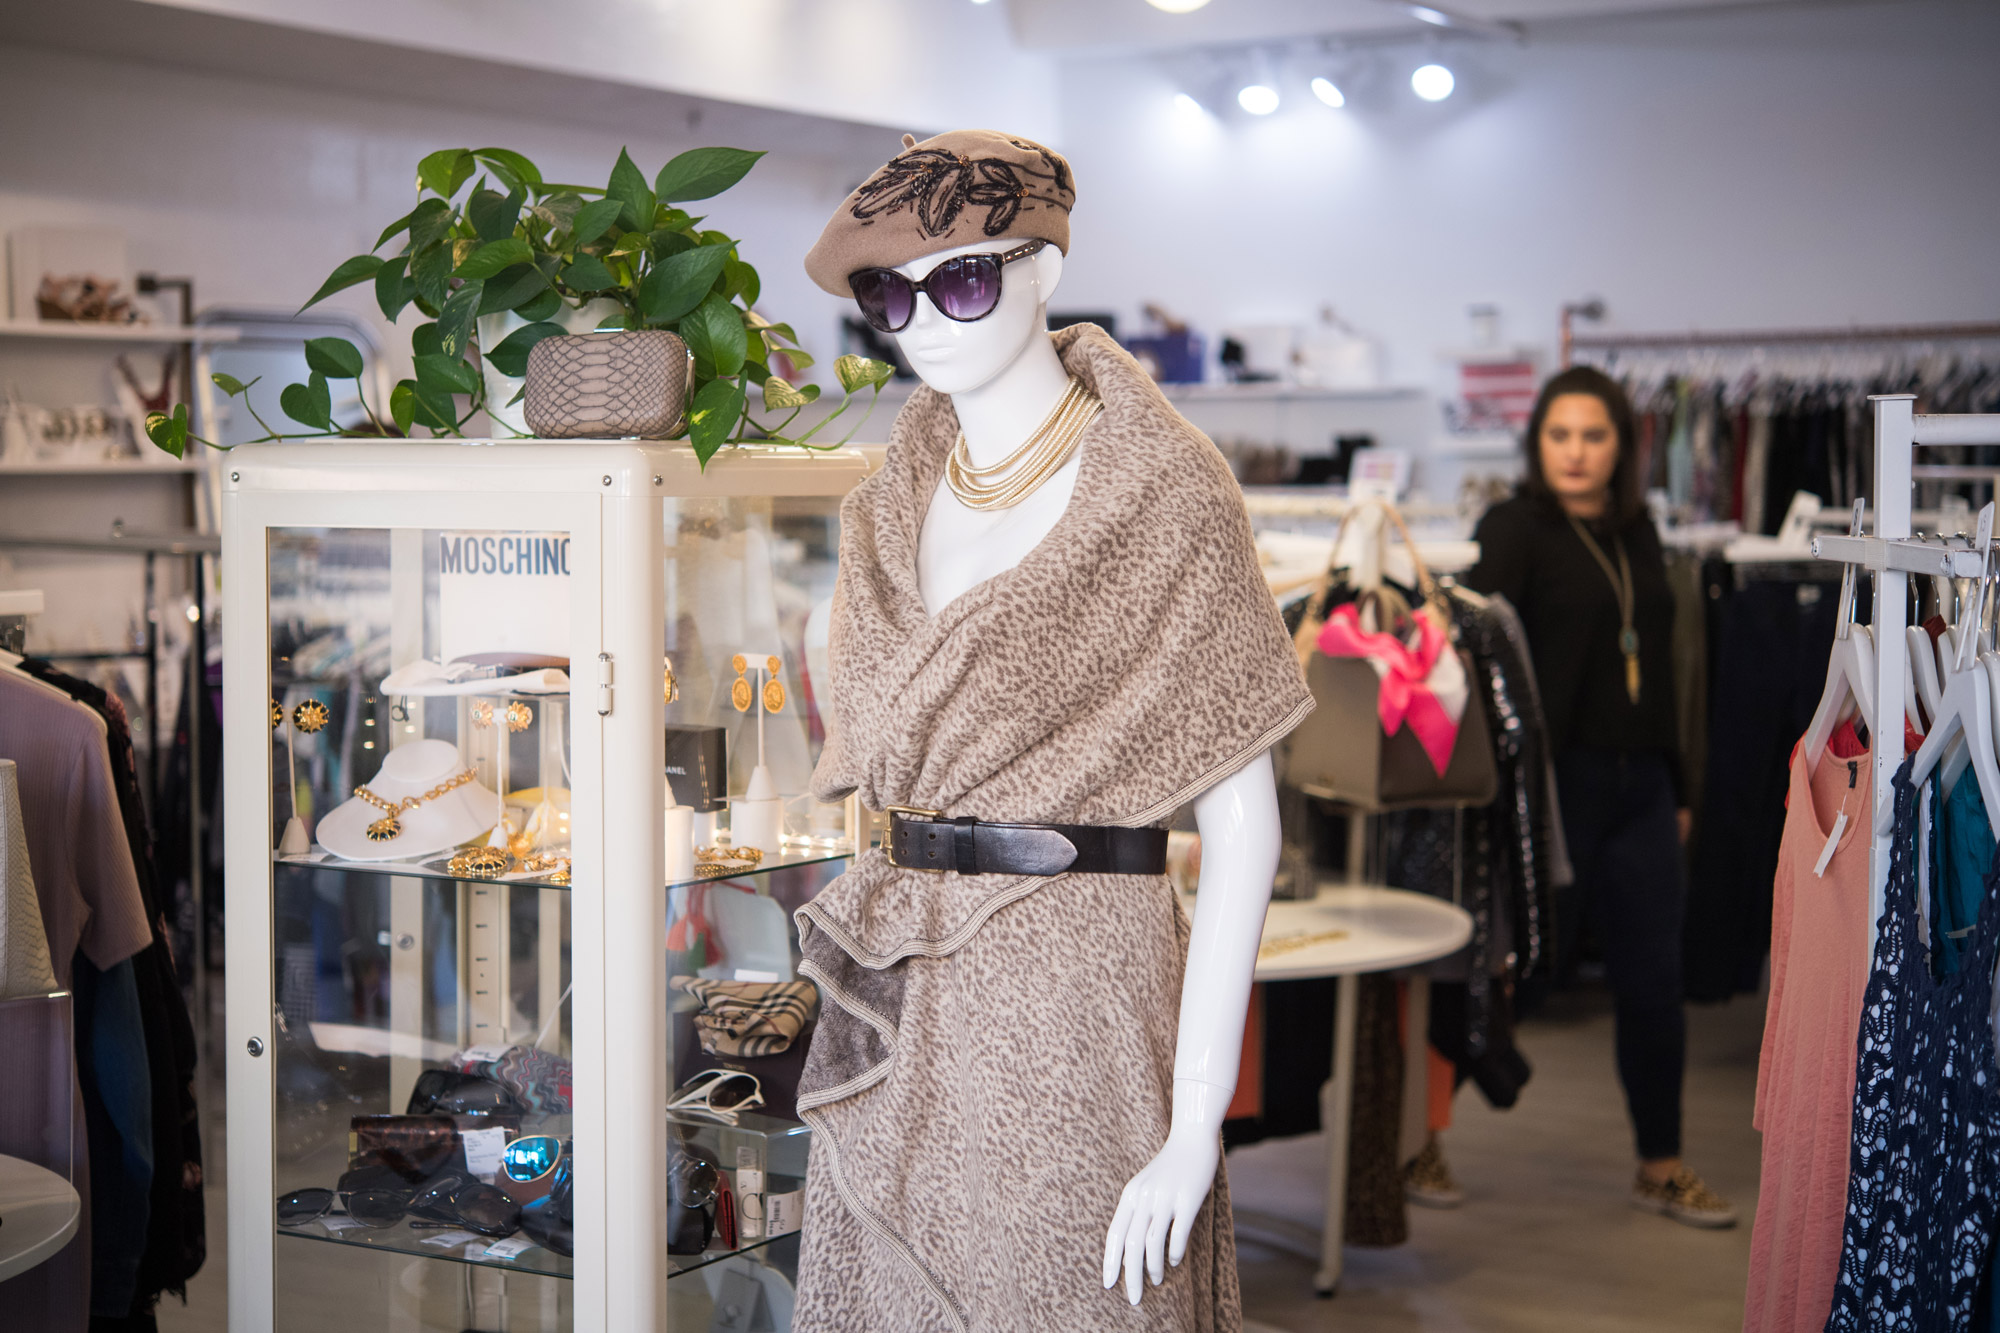 A mannequin inside Covet is draped in fashionable cheetah print